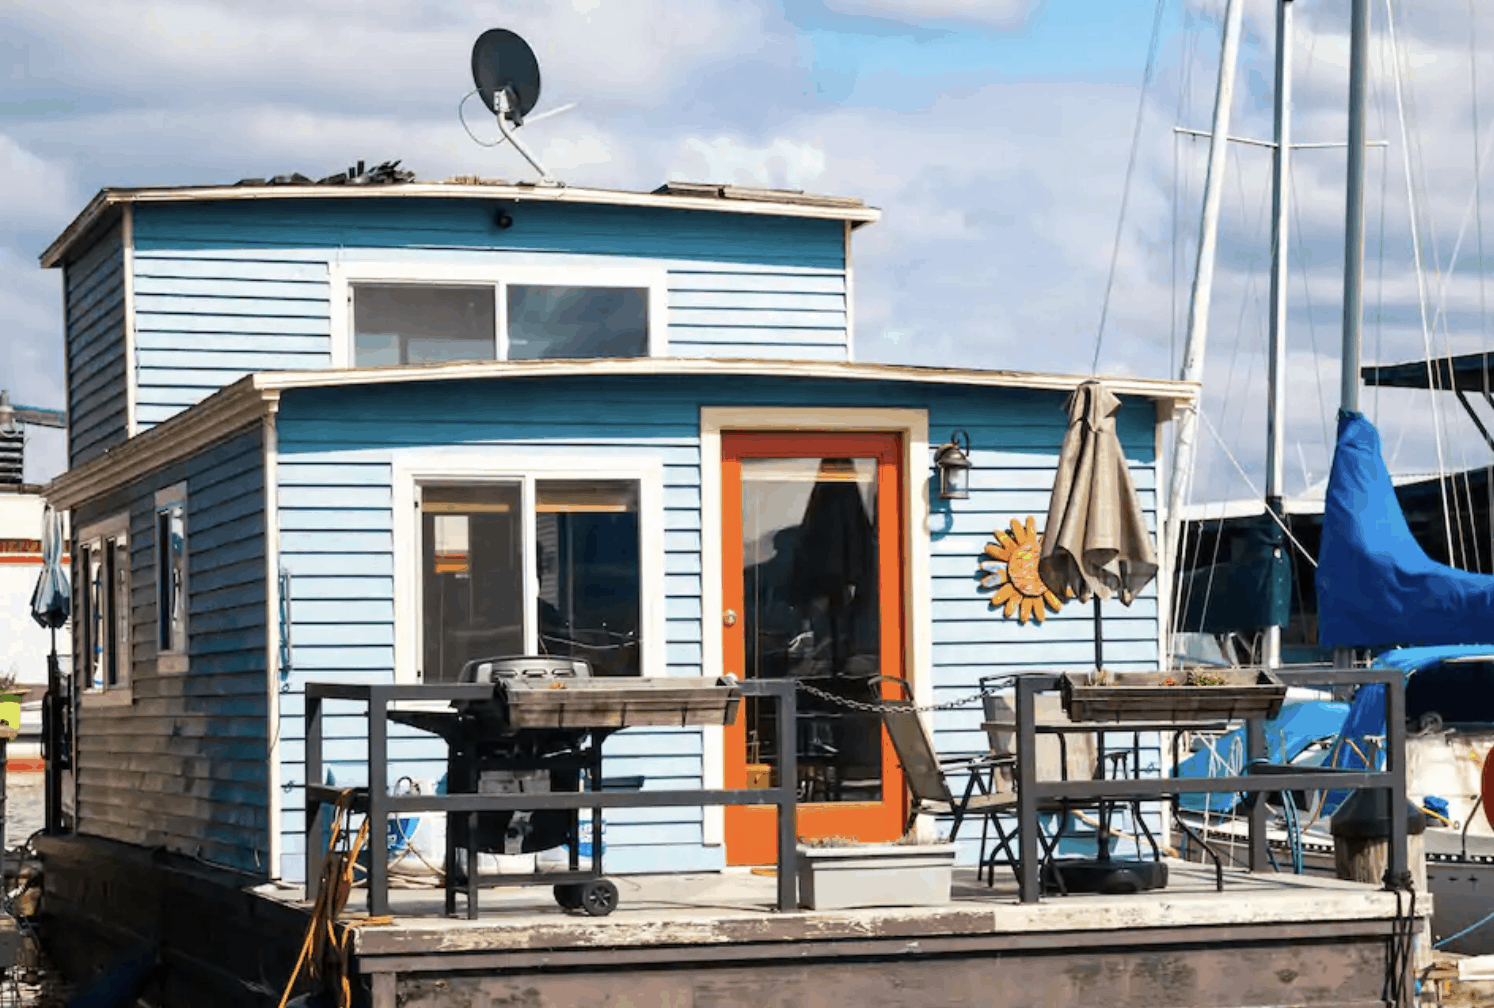 Seattle Airbnbs - Relaxing & Charming Houseboat